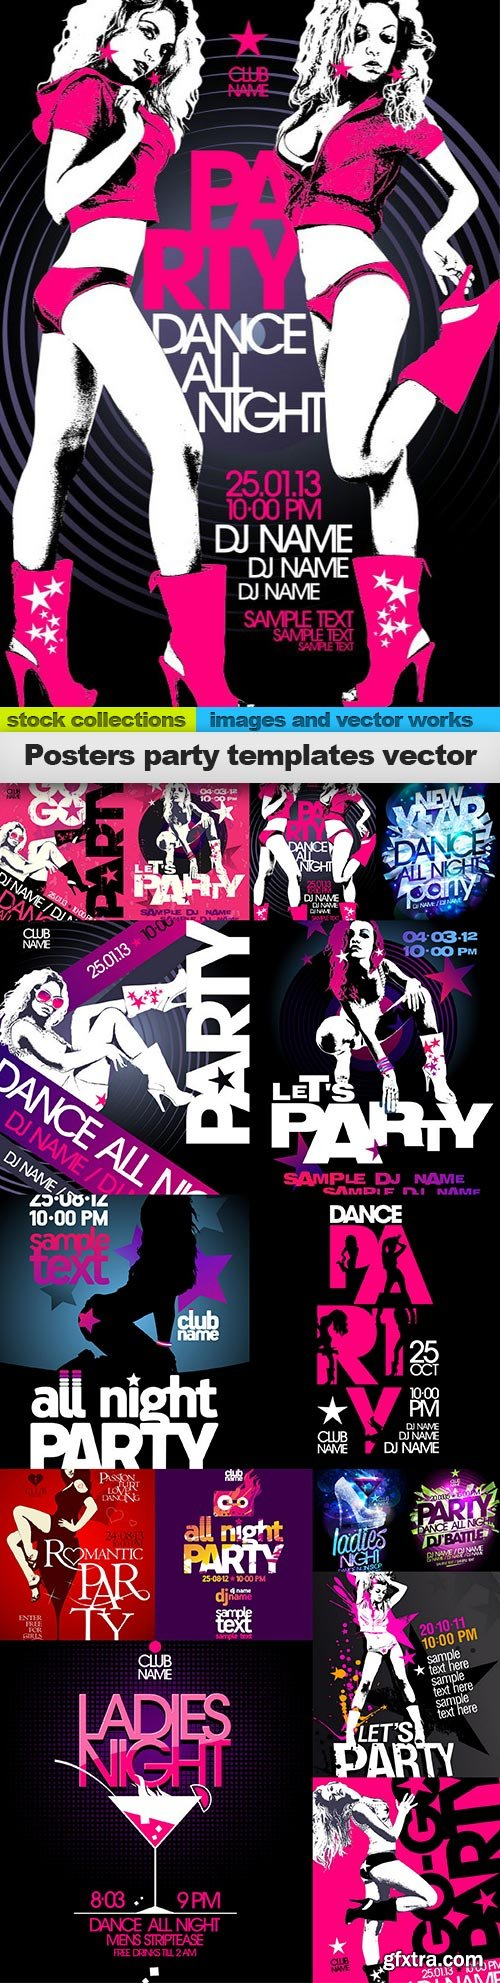 Posters party templates vector, 15 x EPS